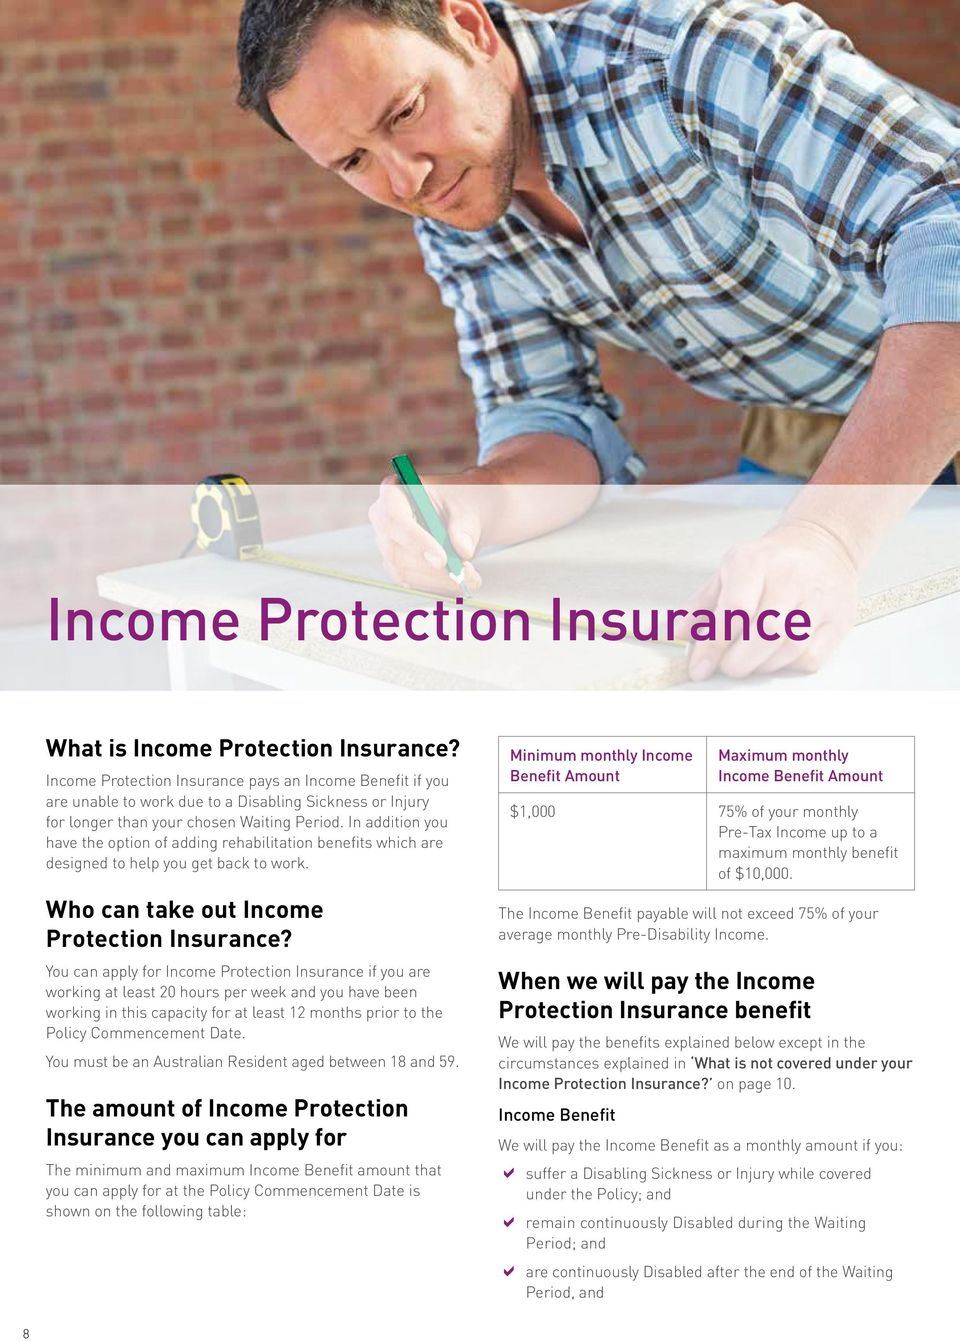 In addition you have the option of adding rehabilitation benefits which are designed to help you get back to work. Who can take out Income Protection Insurance?